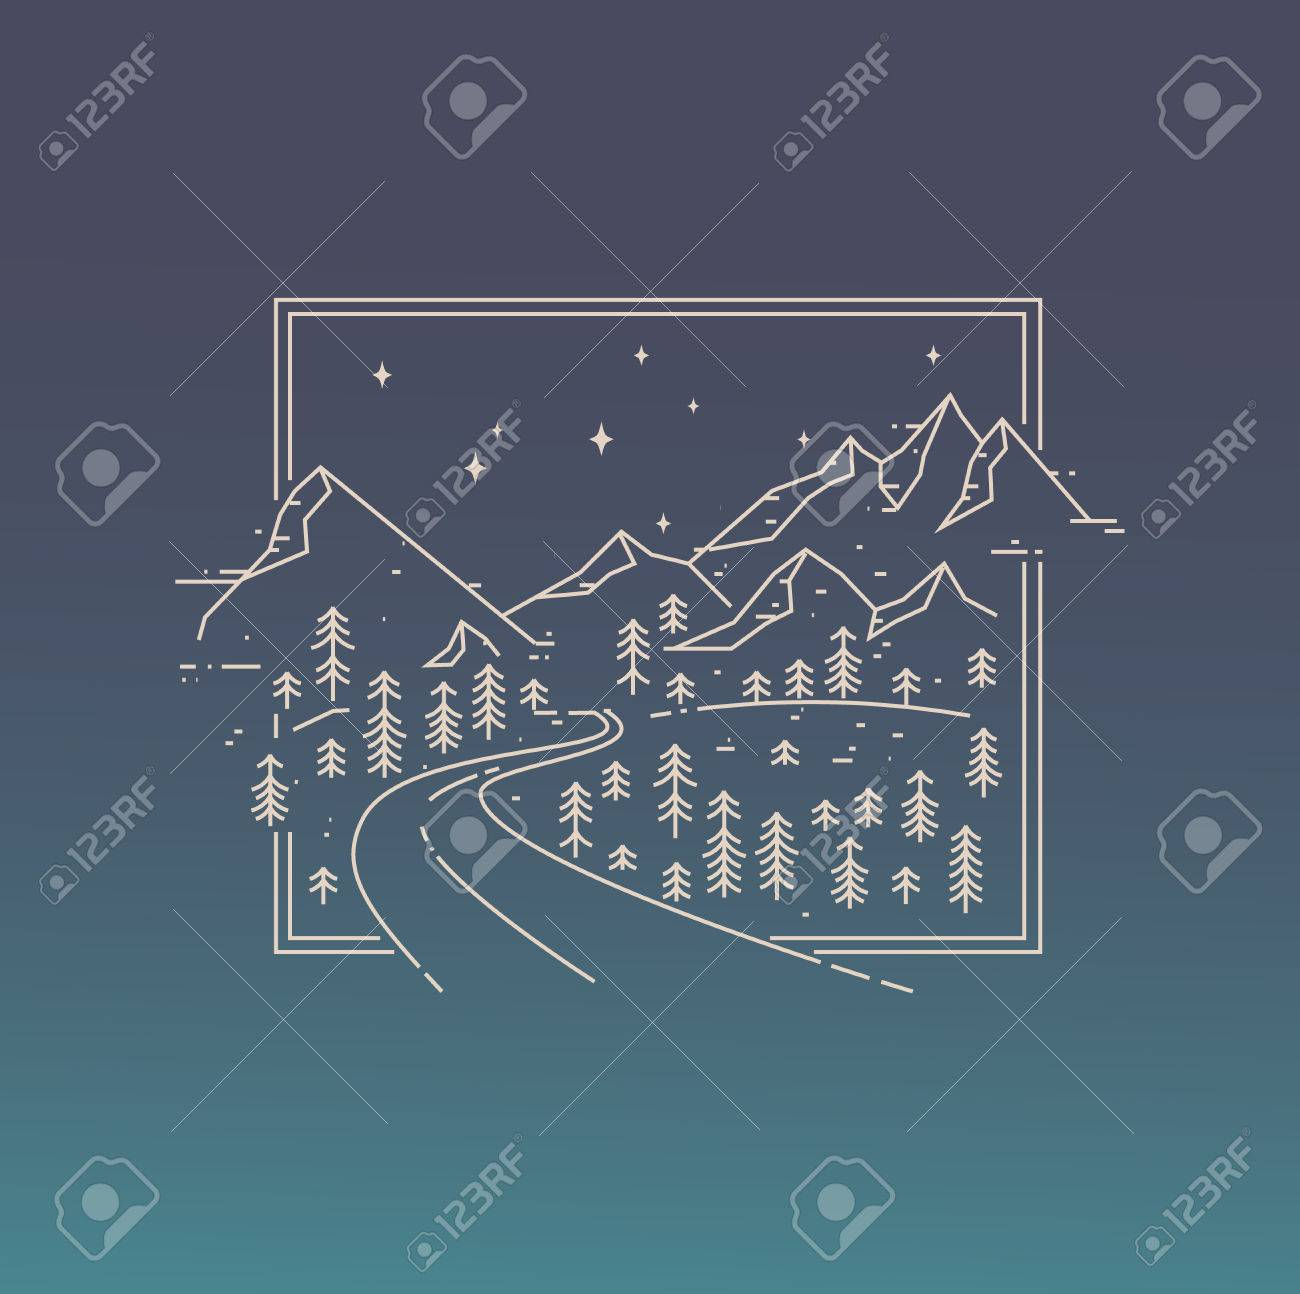 Inspiration Linear Poster With Mountains, Road And The Stars ...